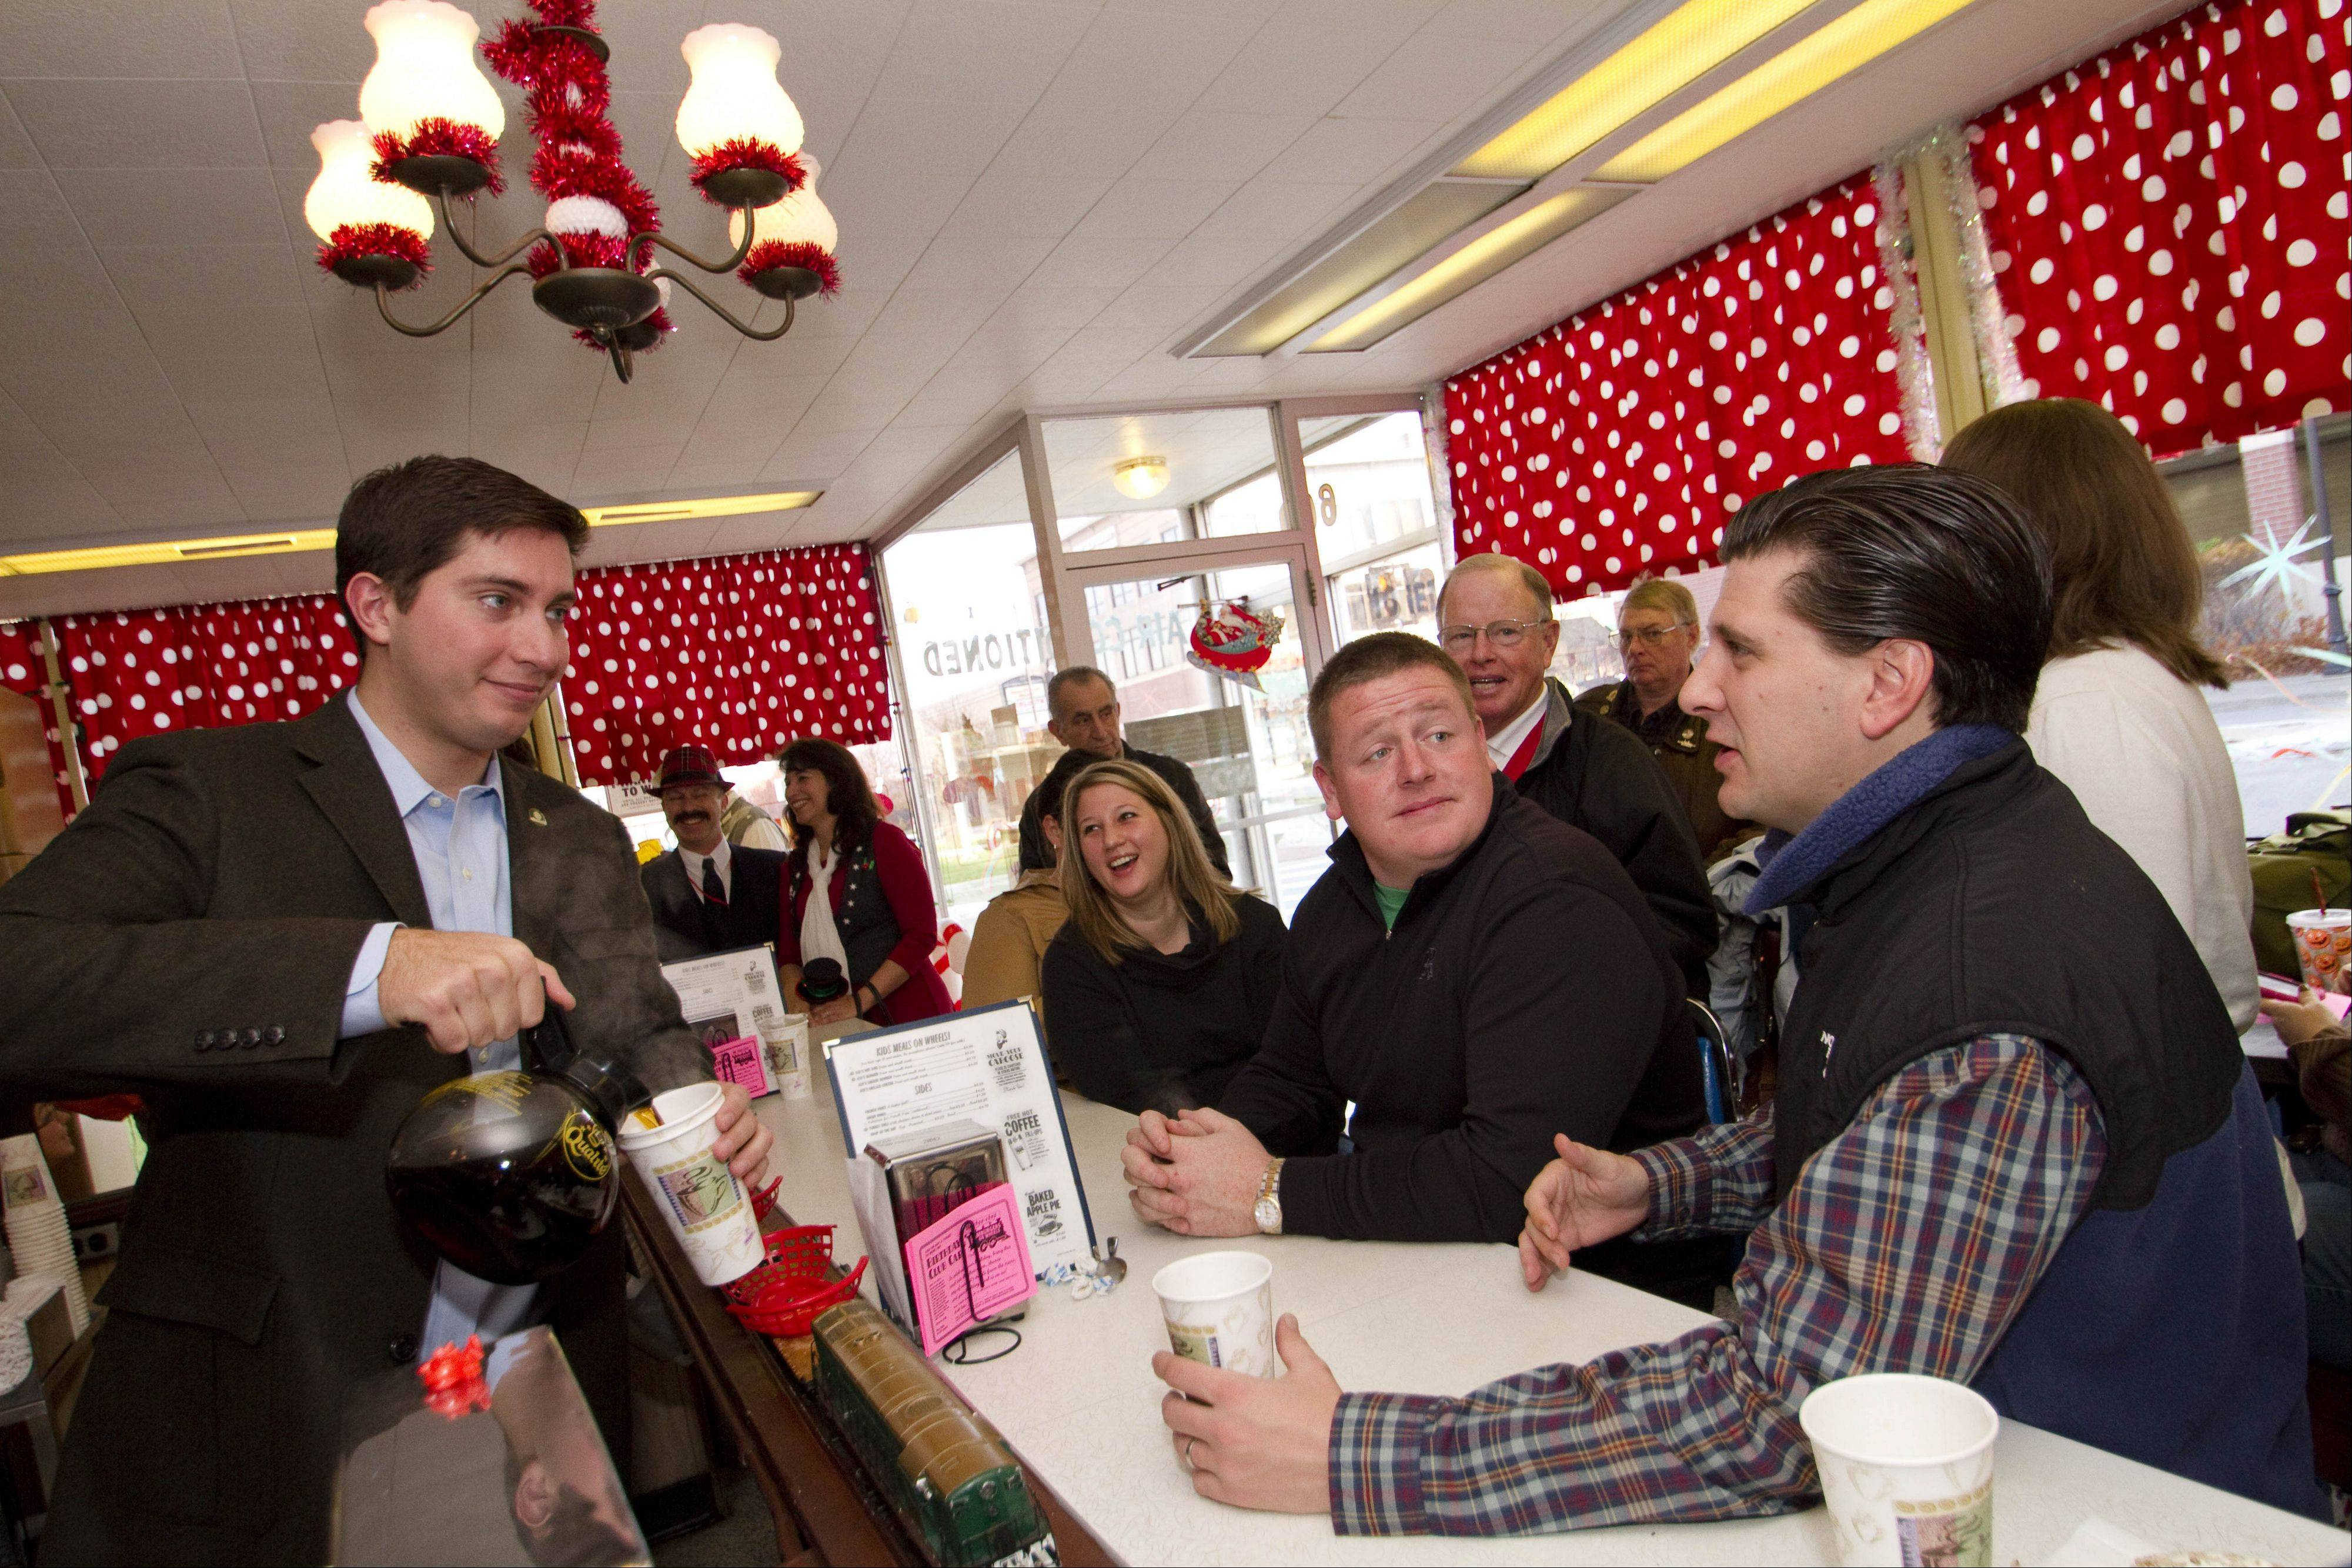 Alderman Matt Bogusz serves coffee to Kristin Meinzer, Patrick McGeean and Matthew Merkle at the Choo Choo Restaurant in Des Plaines as he announces his mayoral candidacy.